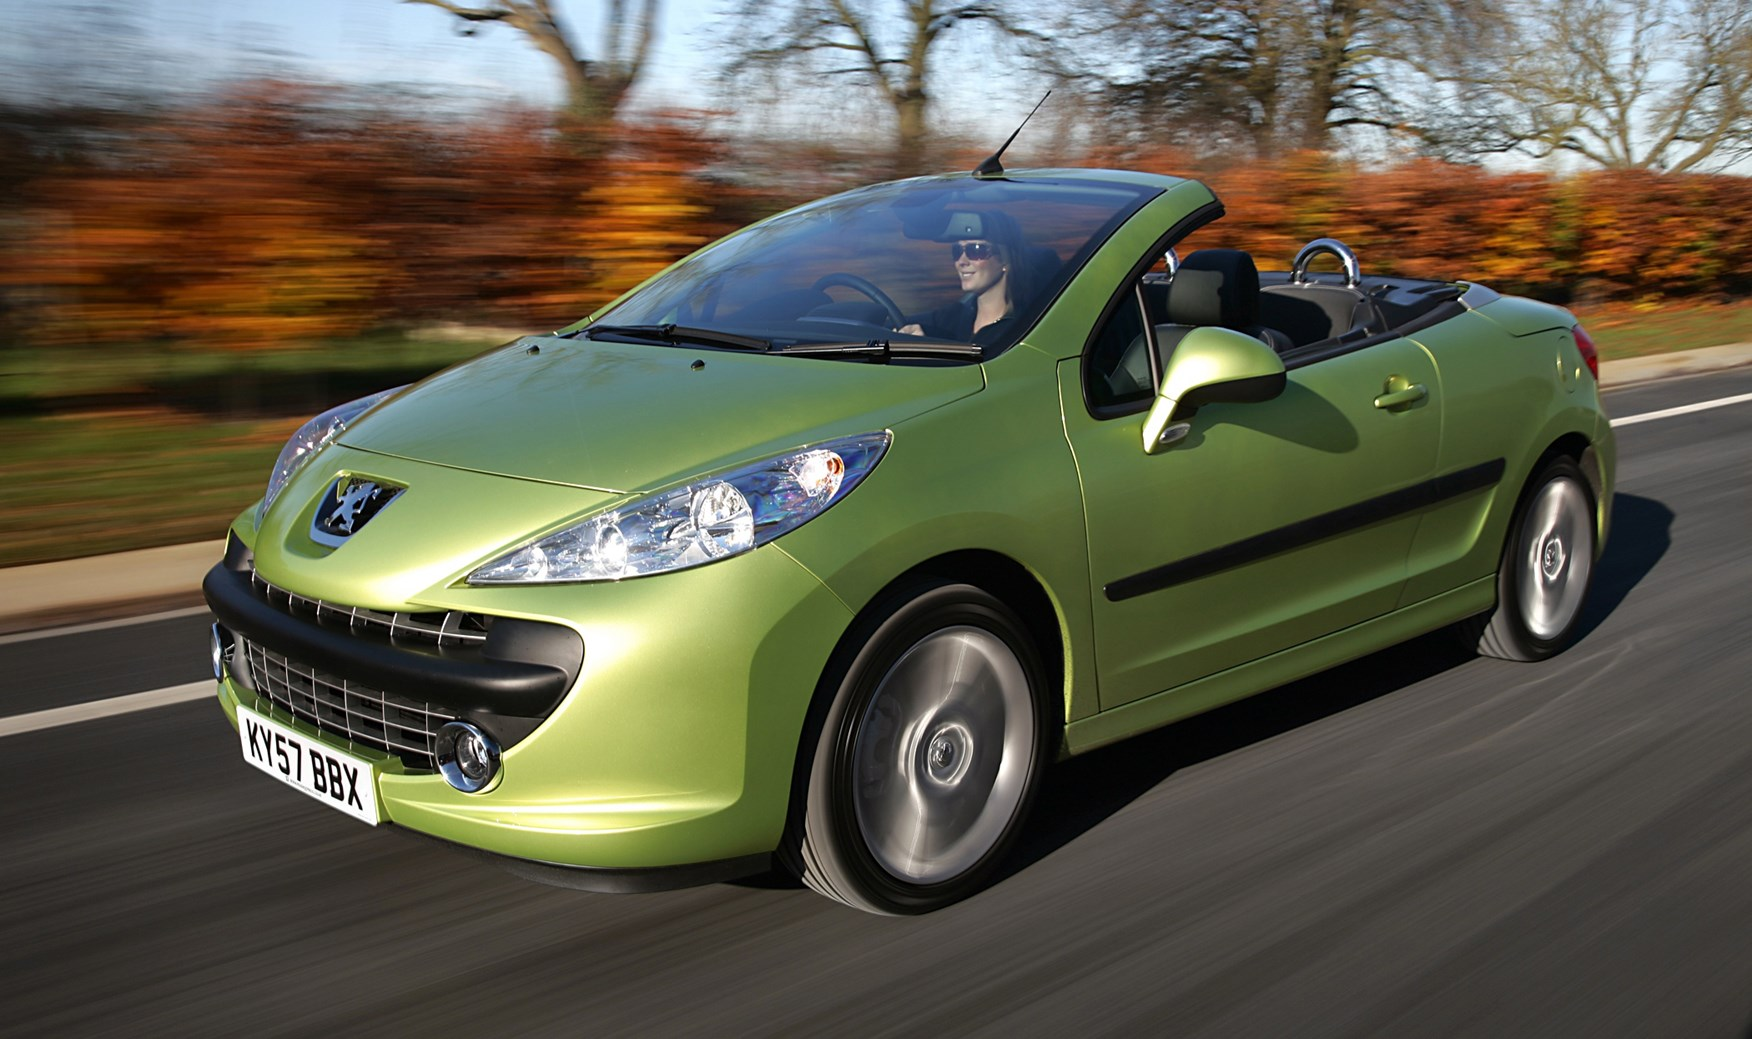 peugeot 207 cc review (2007 - 2014) | parkers